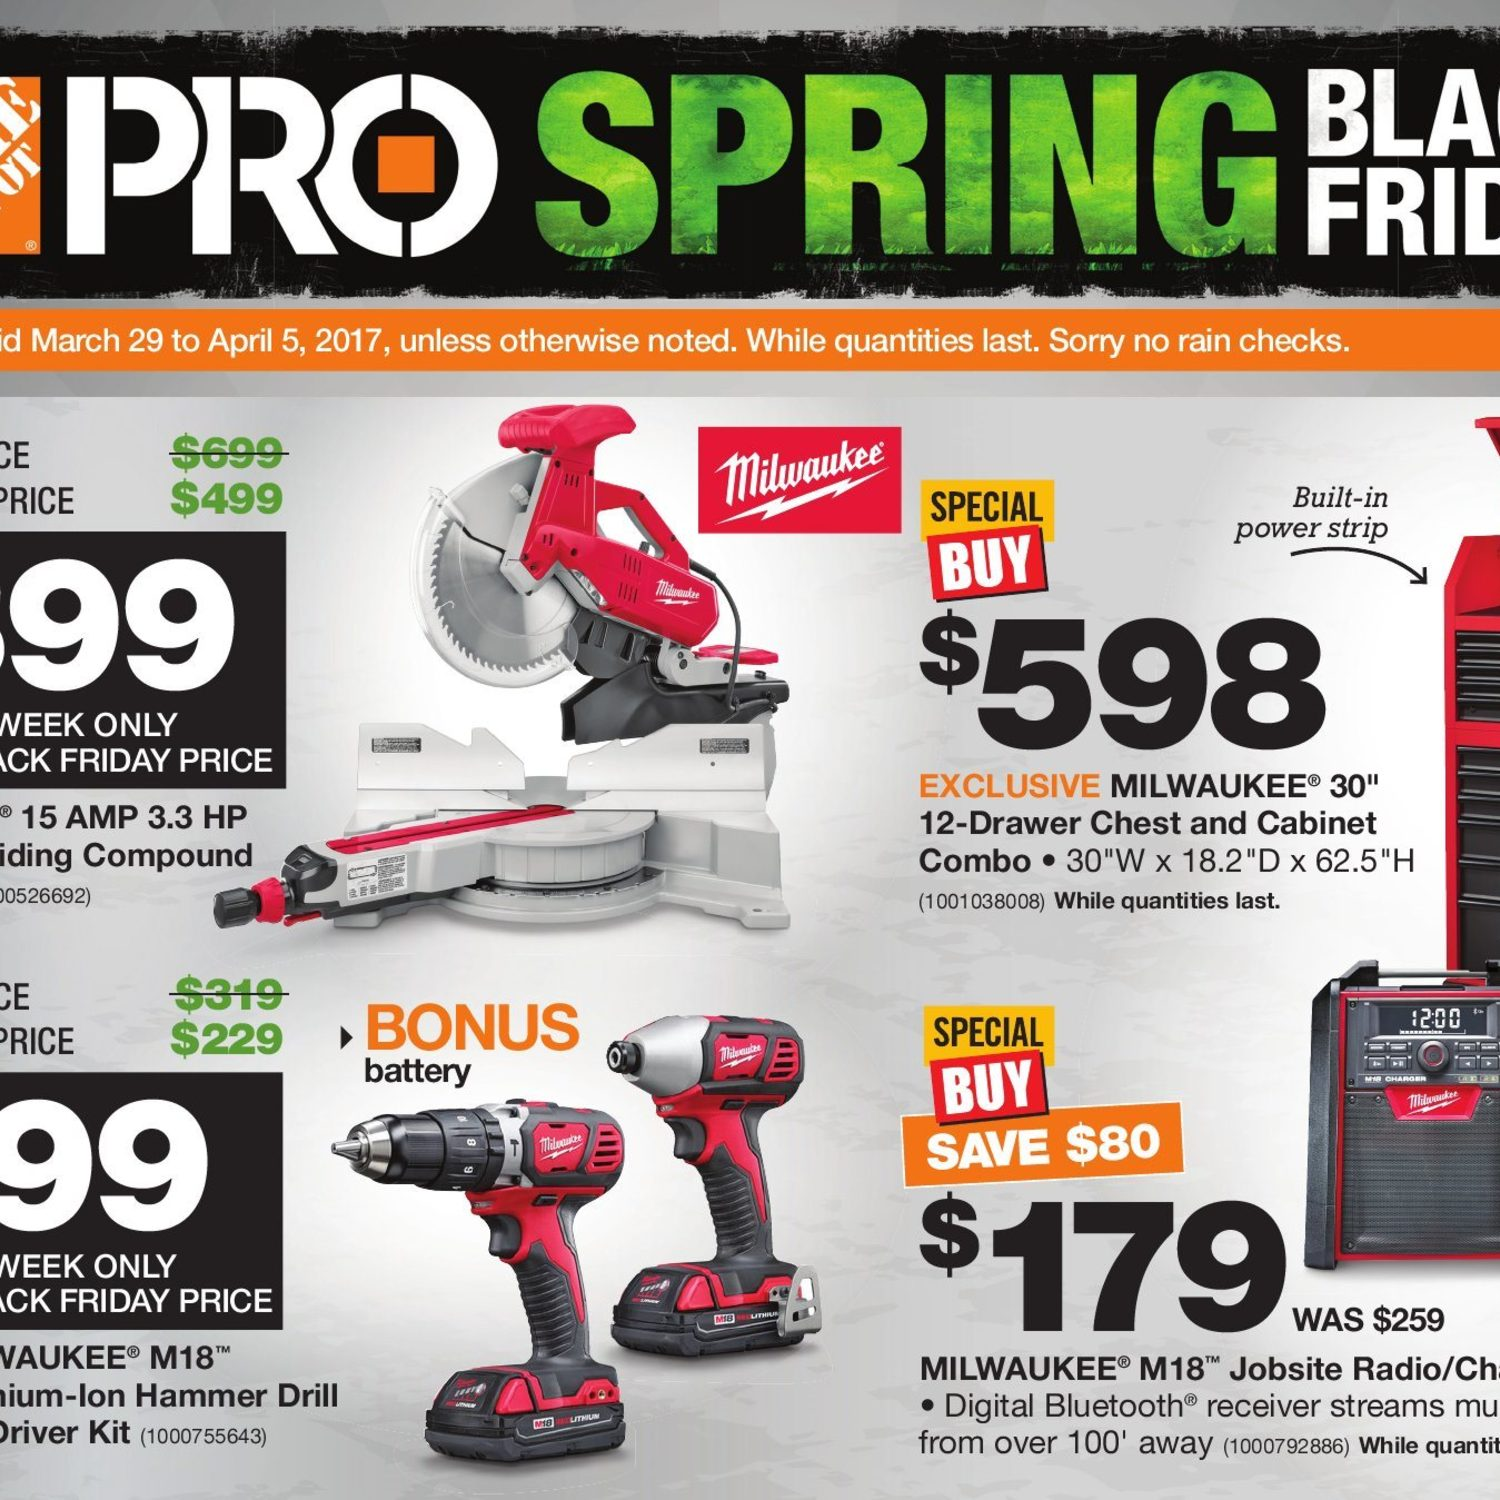 Home Depot Weekly Flyer Pro Savings Spring Black Friday Mar 29